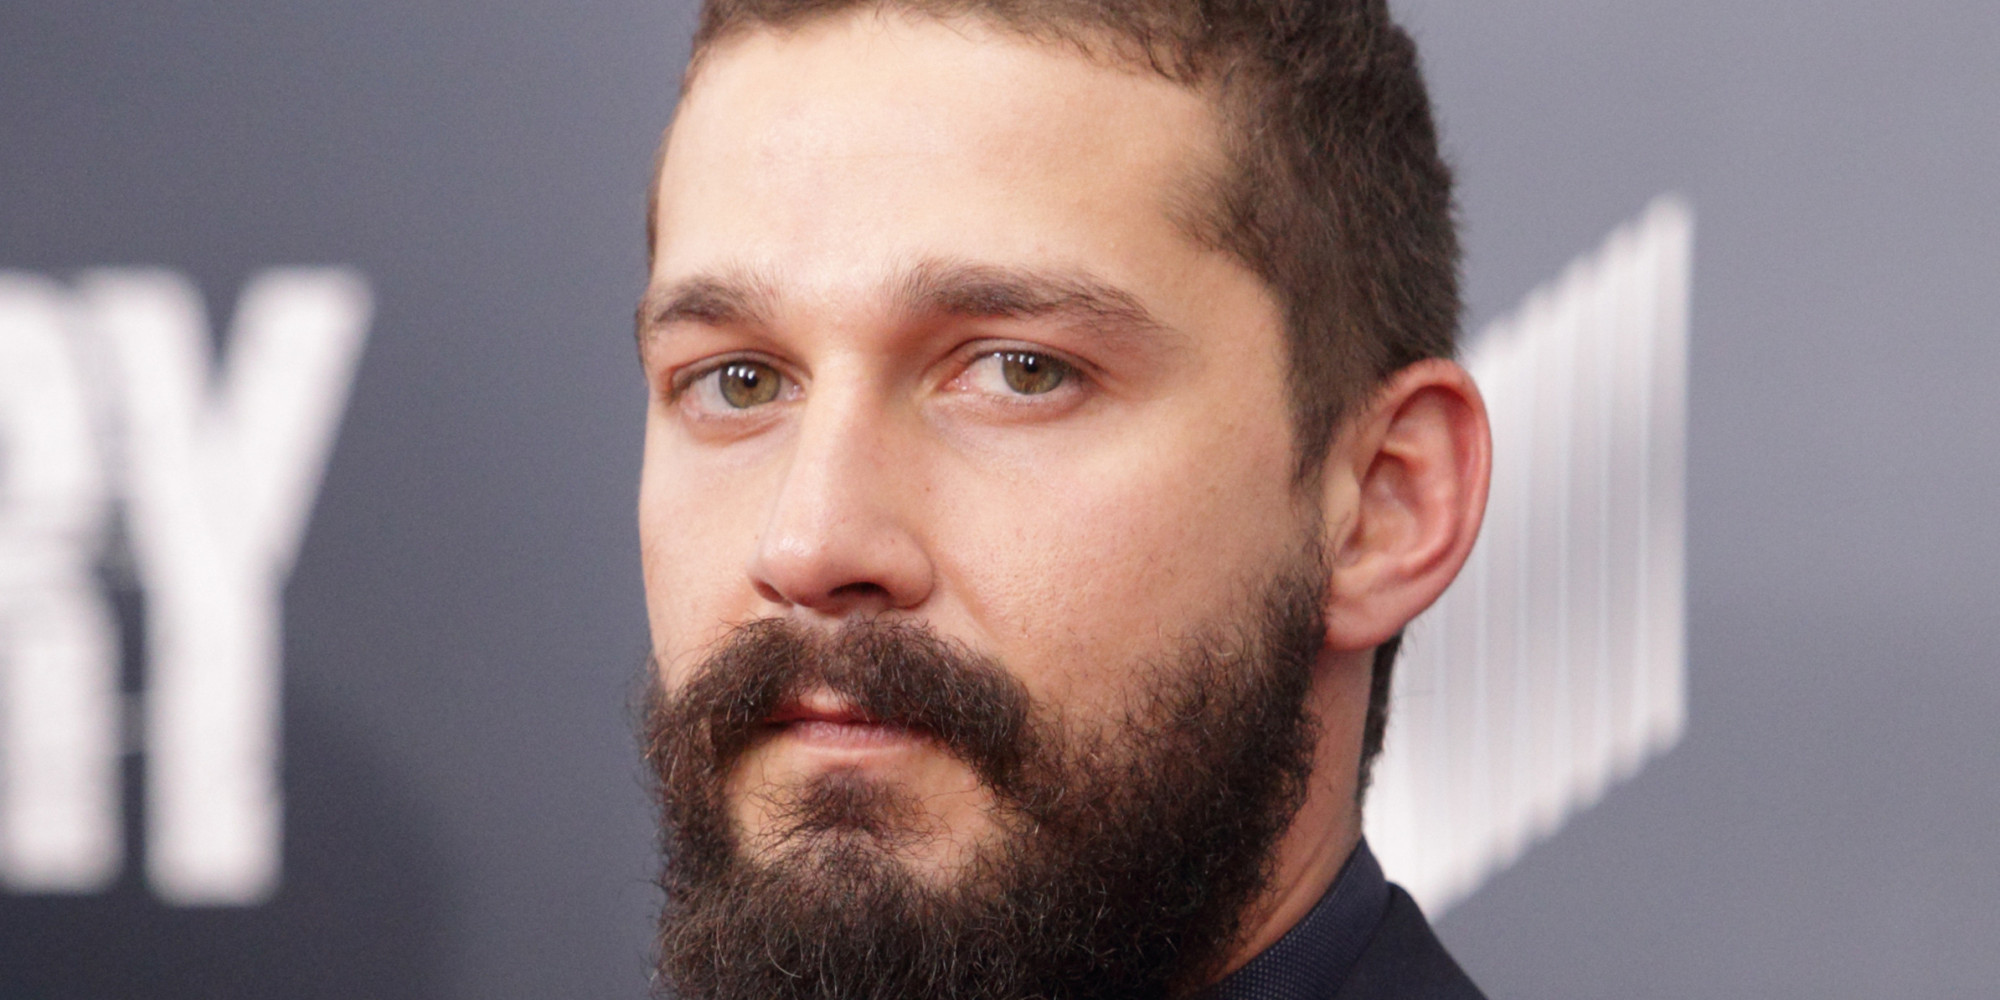 shia labeouf twittershia labeouf - just do it, shia labeouf magic, shia labeouf twitter, shia labeouf live, shia labeouf stream, shia labeouf 2017, shia labeouf magic gif, shia labeouf trump, shia labeouf 2016, shia labeouf flag, shia labeouf tattoo, shia labeouf just do it скачать, shia labeouf style, shia labeouf фильмы, shia labeouf height, shia labeouf gif, shia labeouf wife, shia labeouf sia, shia labeouf movies, shia labeouf rob cantor